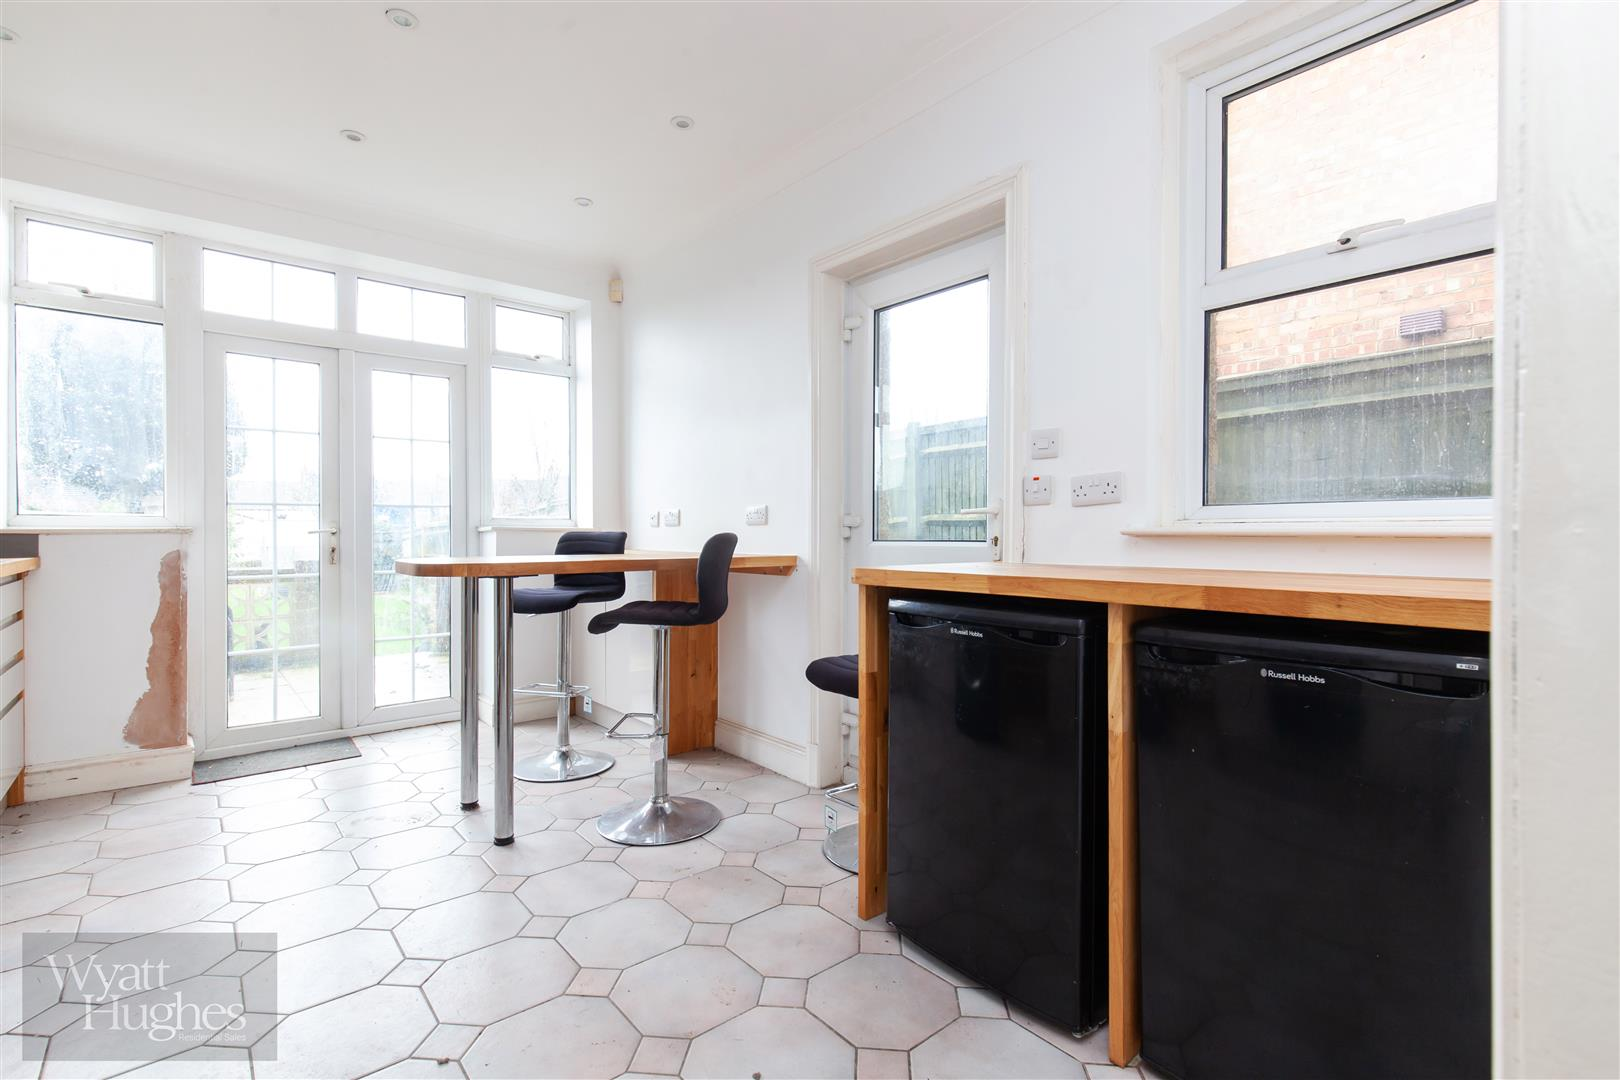 3 bed end-of-terrace-house for sale in Burry Road, St. Leonards-On-Sea  - Property Image 20